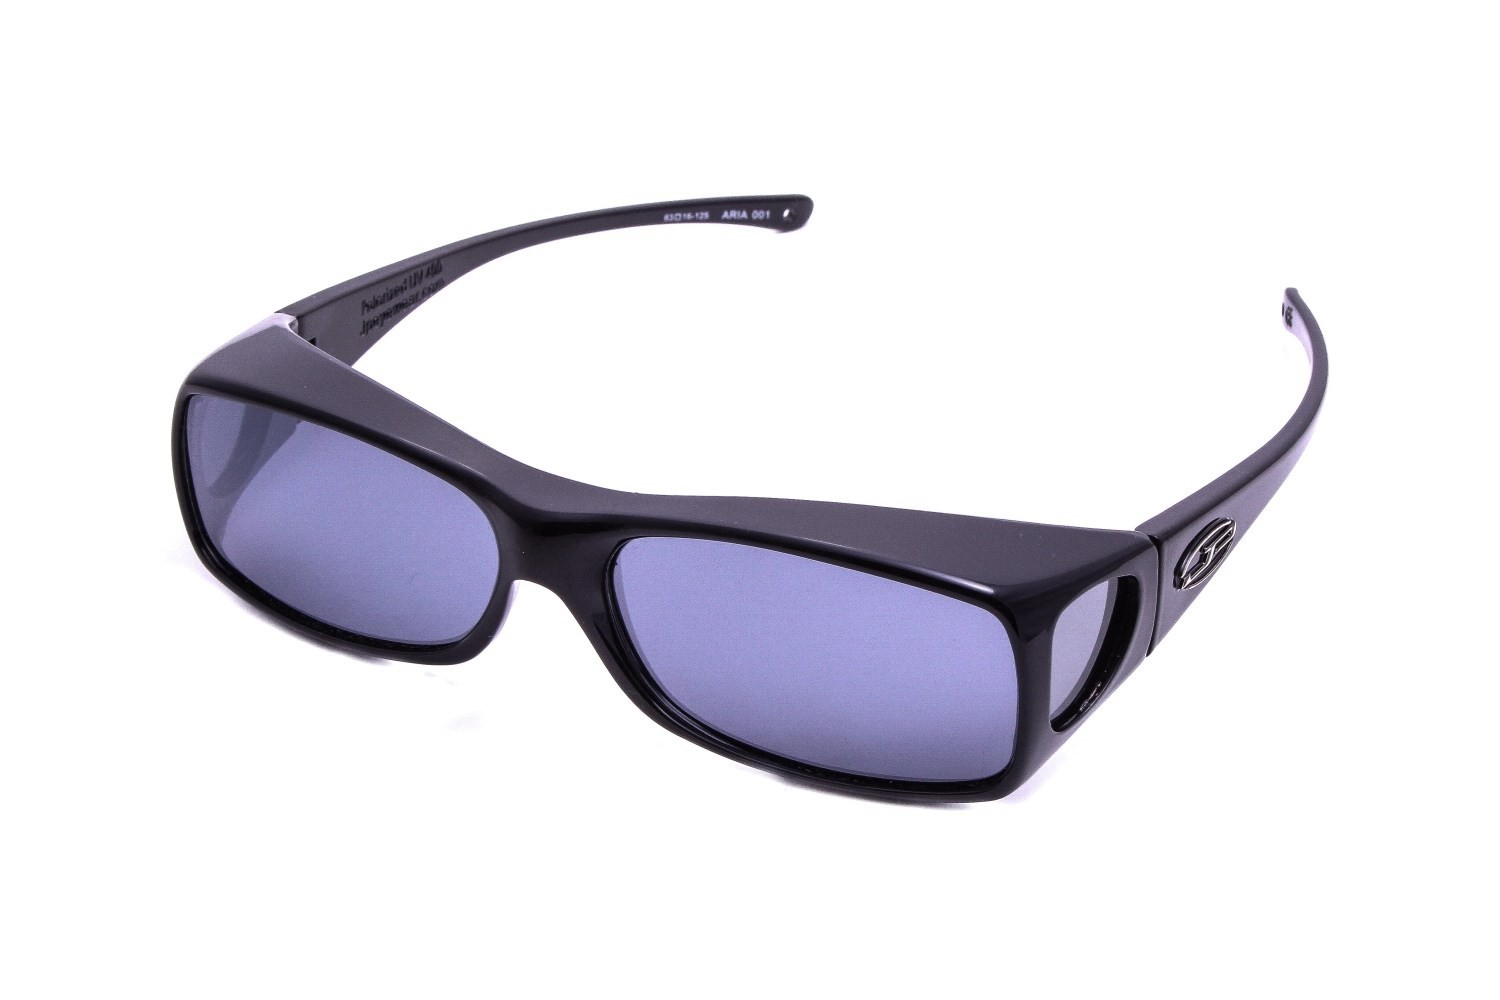 39d3db4b97 Fitovers Eyewear Aria — Over Glasses for Rectangle Frames Sunglasses  Product Description